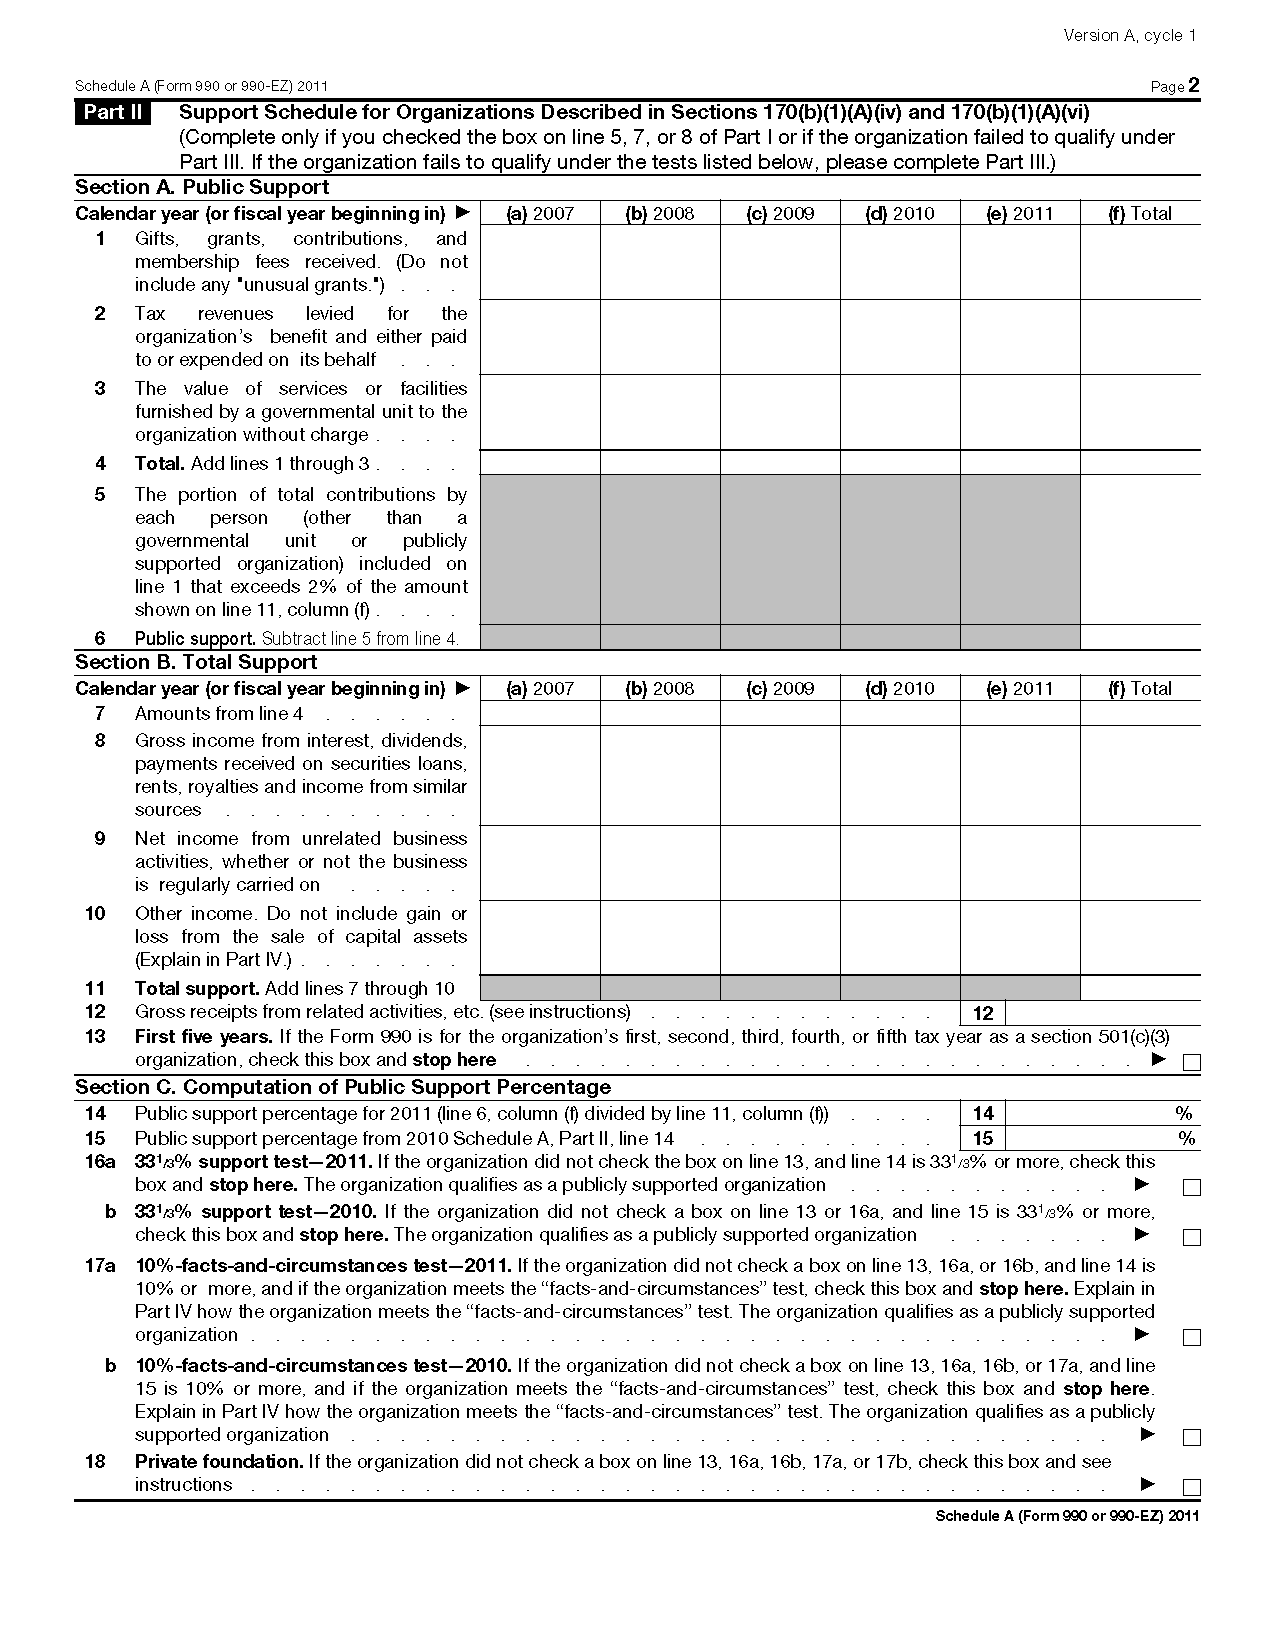 Form 990 or 990-EZ (Sch A) Public Charity Status and Public Support